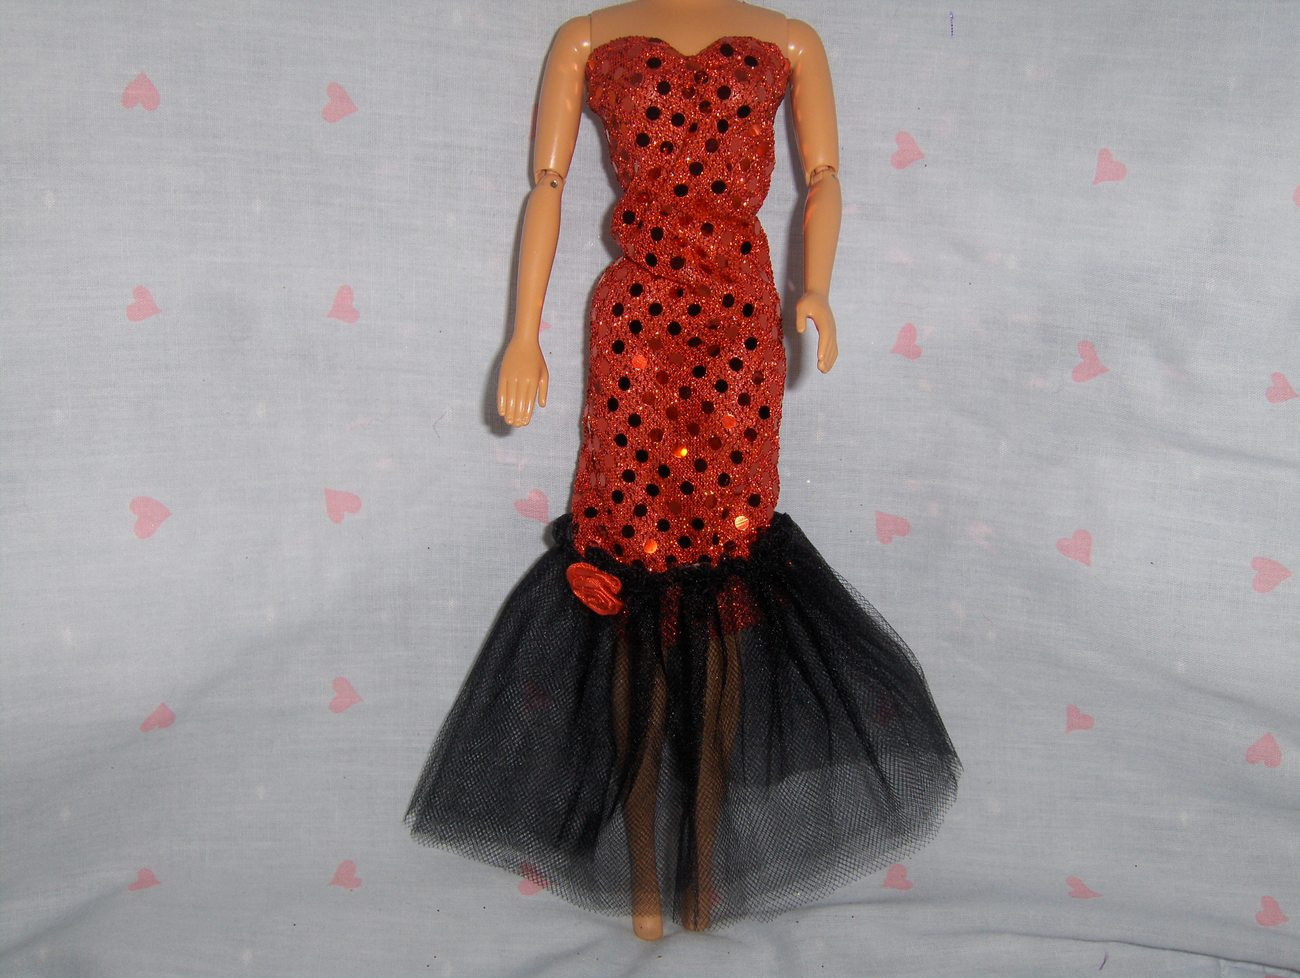 Red Glitter Dot with Black Tulle Gown and Red Rose Accent fits Barbie and most F